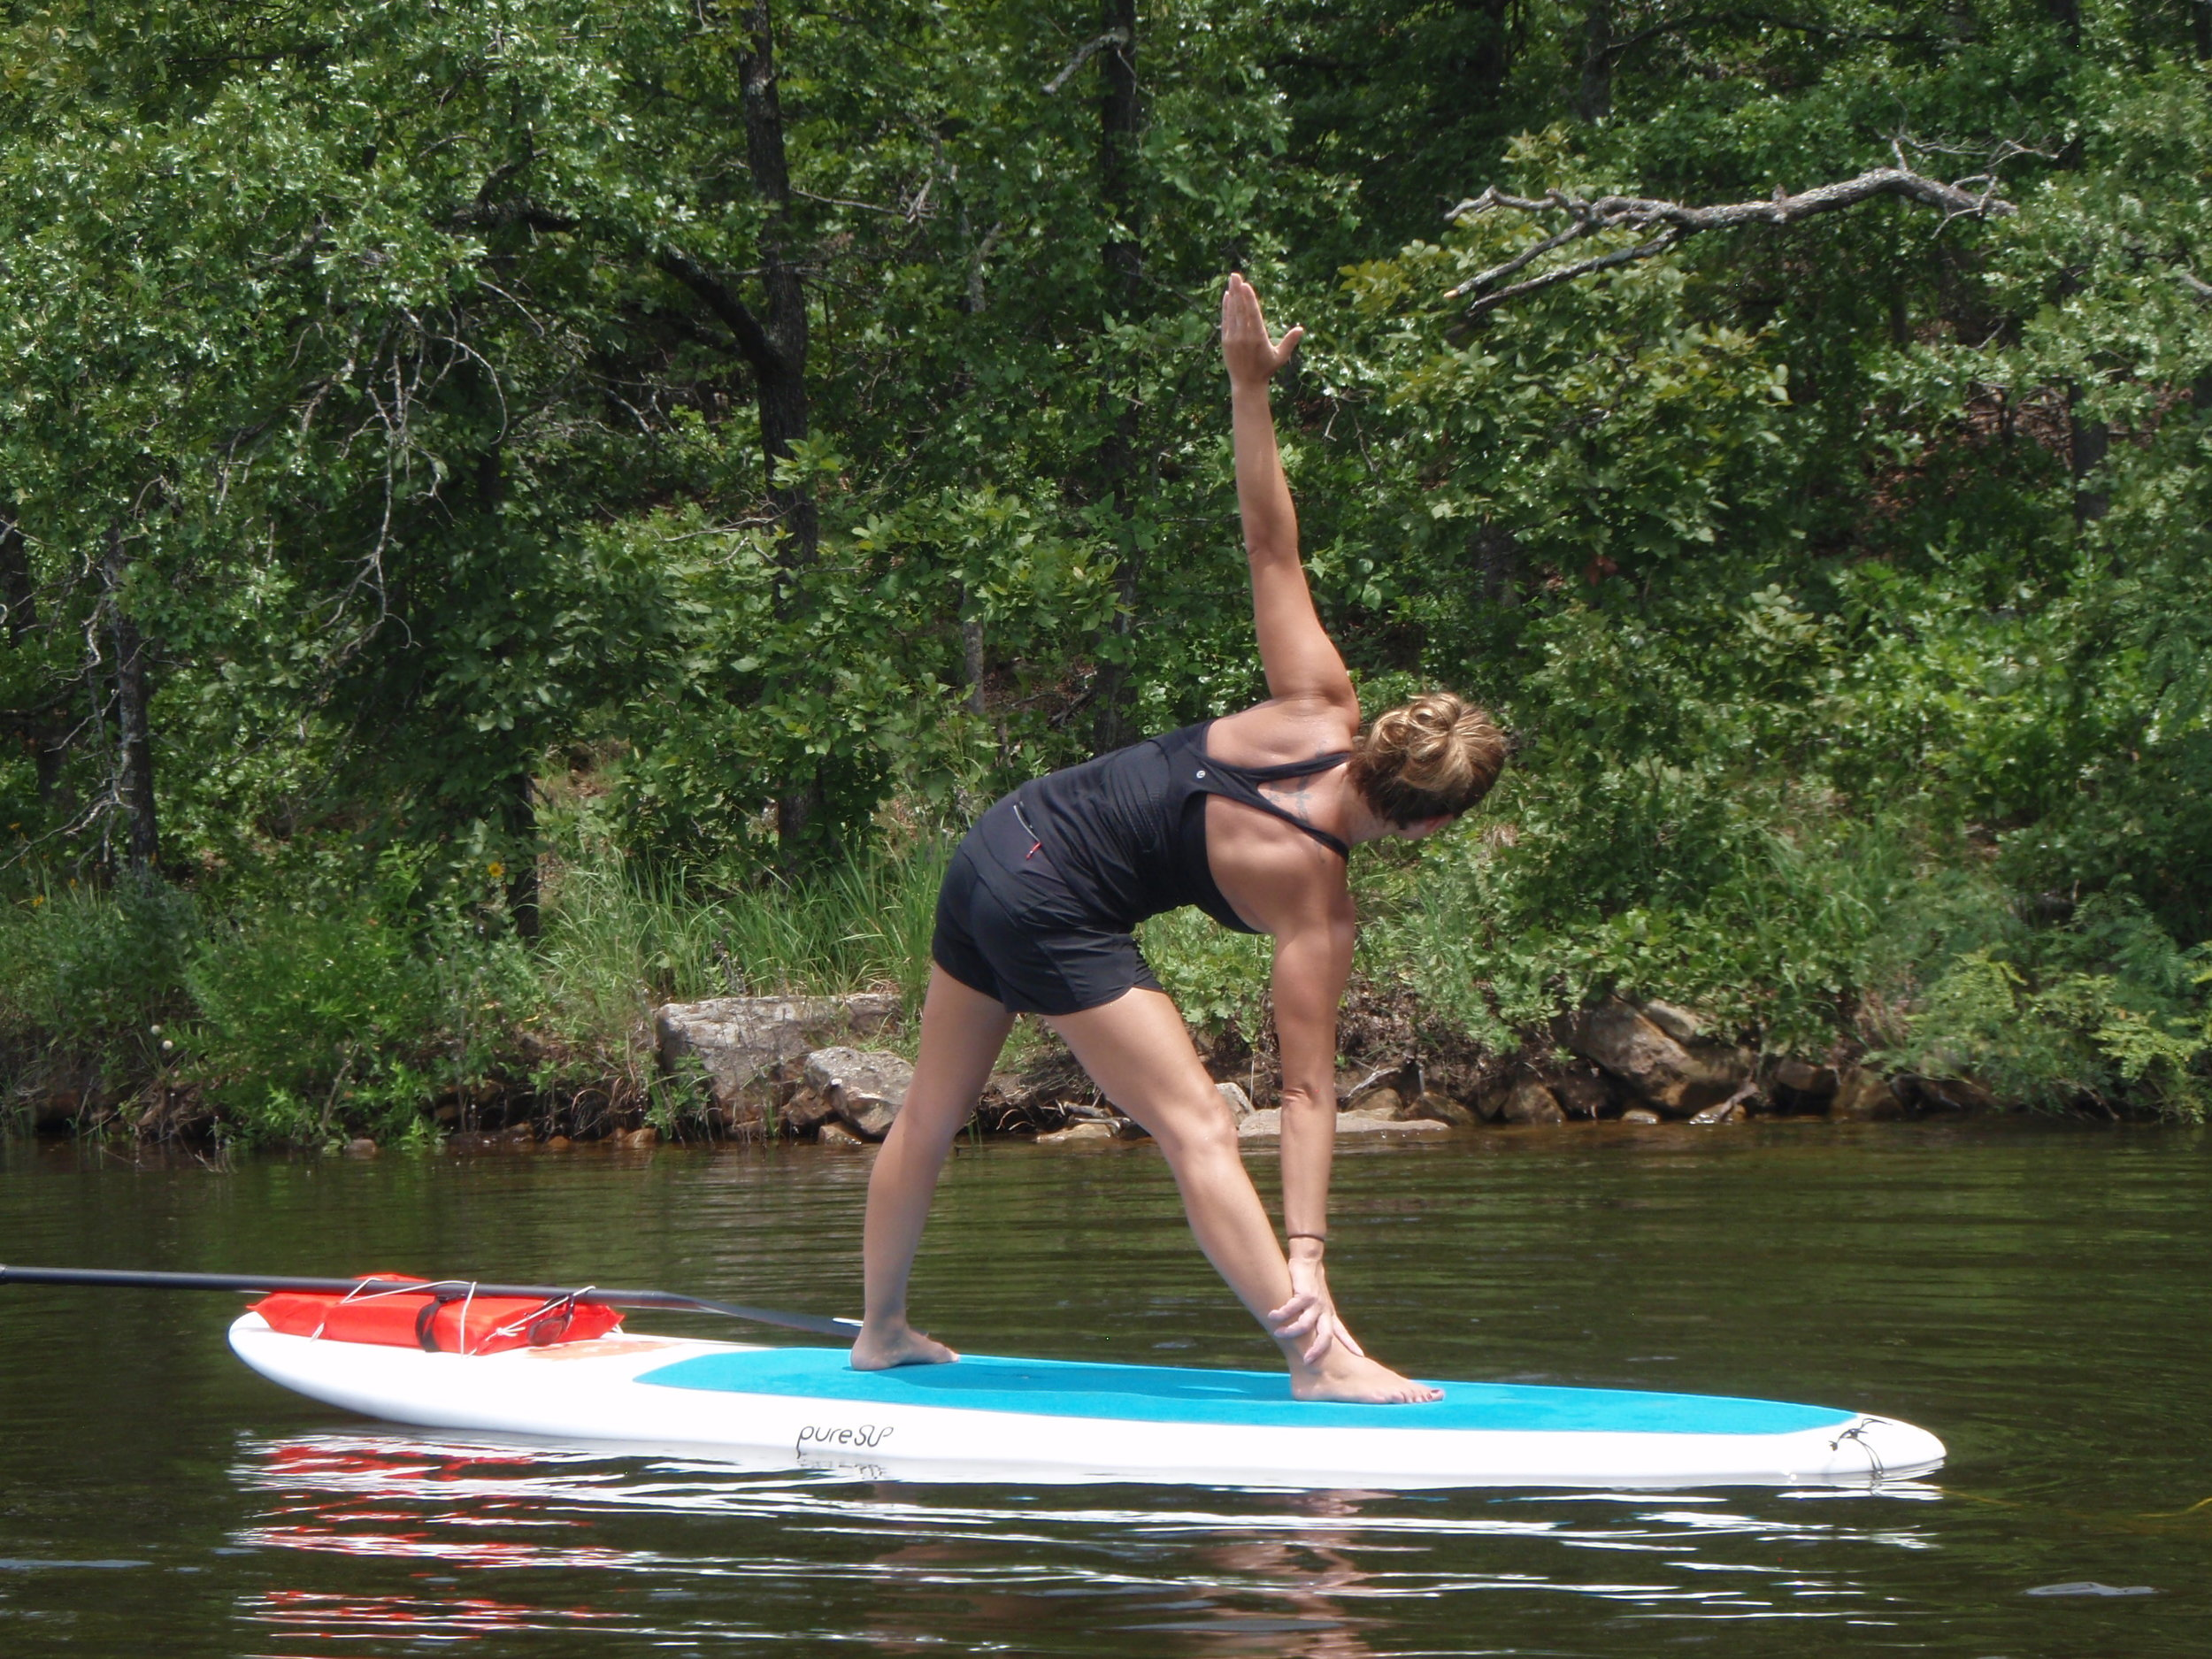 Rising Lotus - SUP Yoga 1 & 2  Learn the basics of SUP, paddle out for flowing asana on the water, enjoy a floating savasana and paddle back feeling like new! Great for SUP & SUP Yoga newbies, while still fun and challenging for pros.